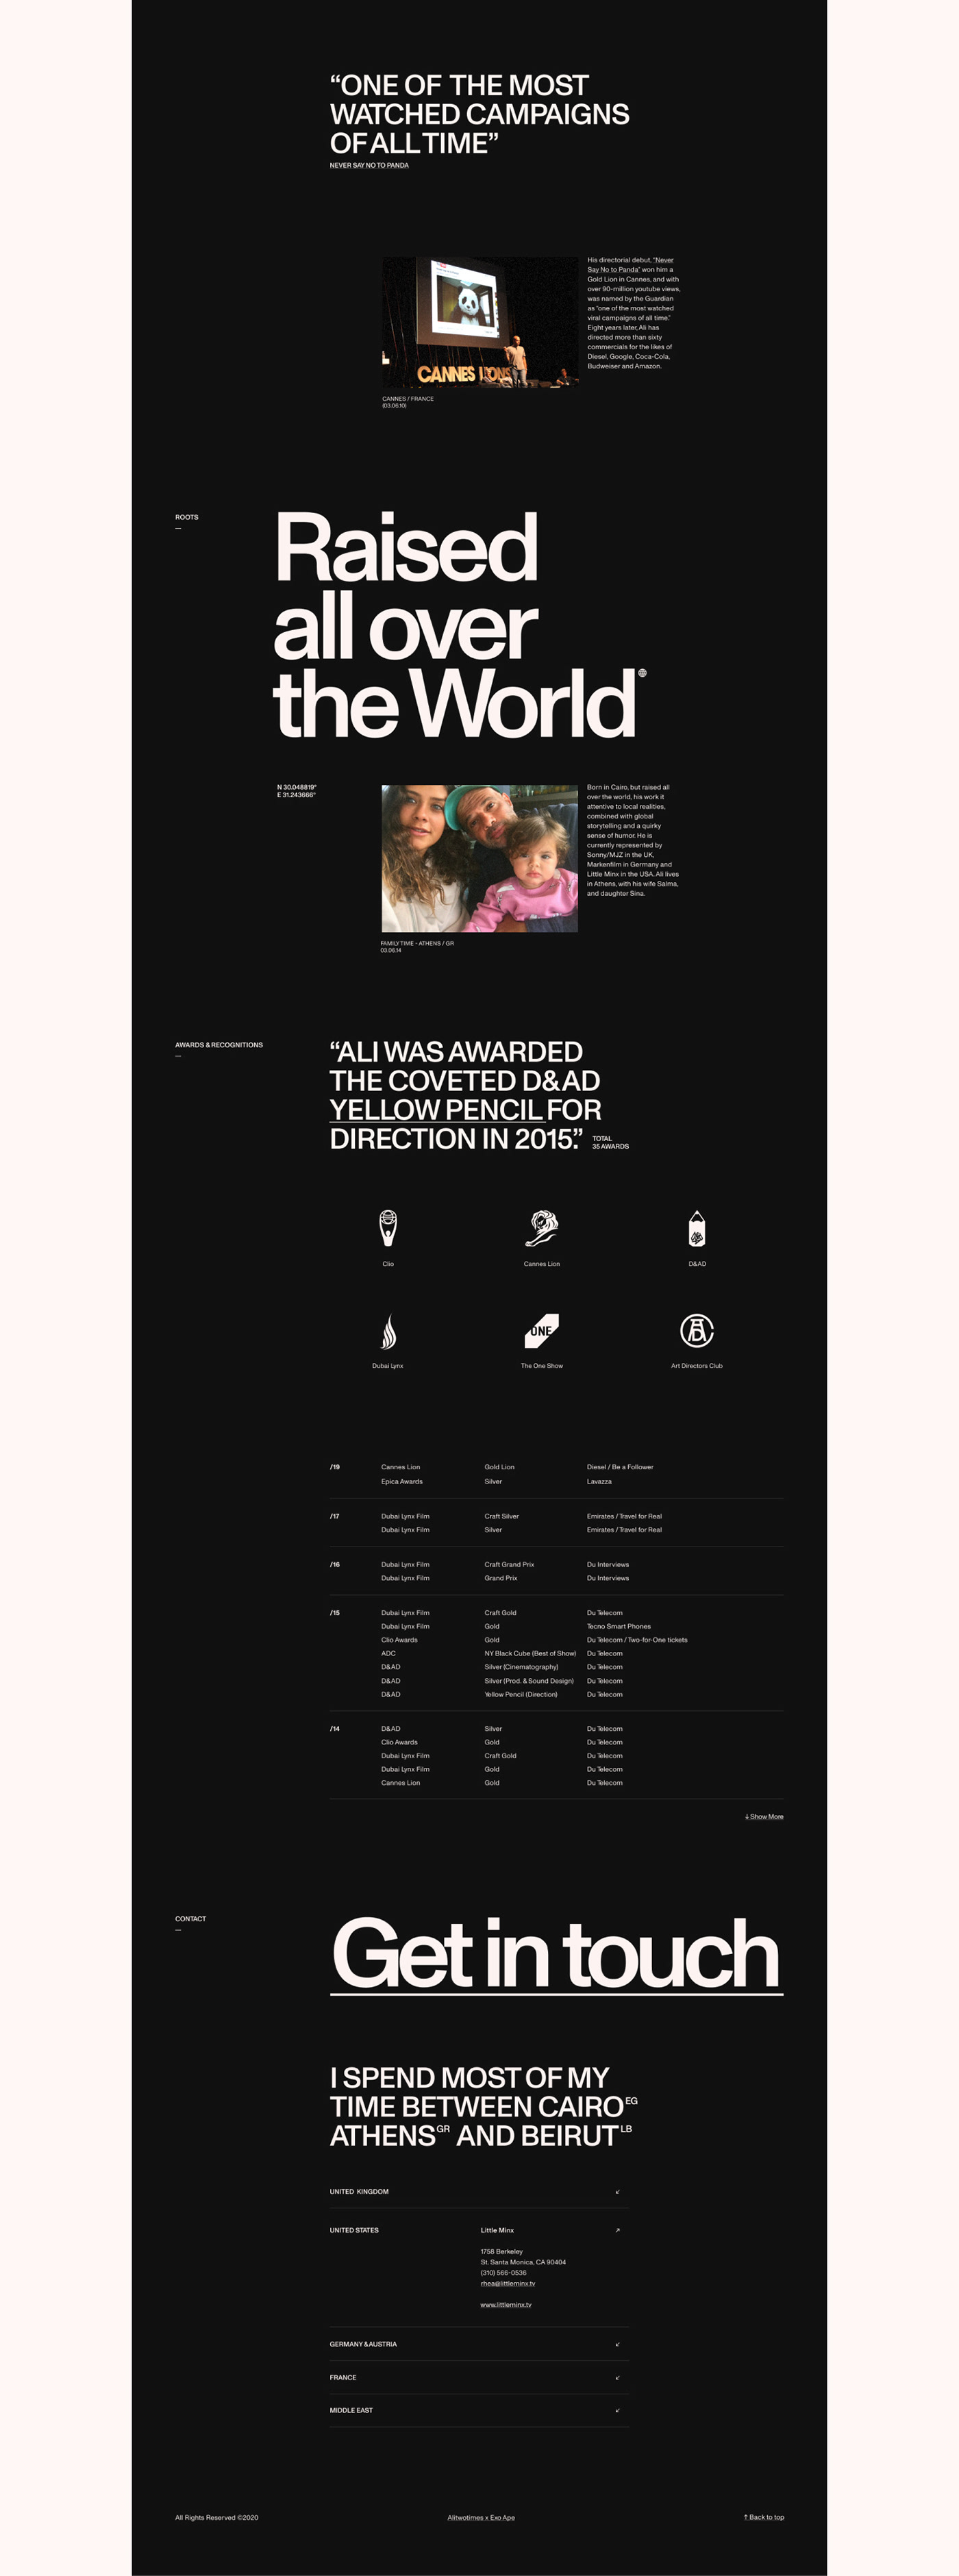 biography page with a swiss design style including dramatic typographic size contrast